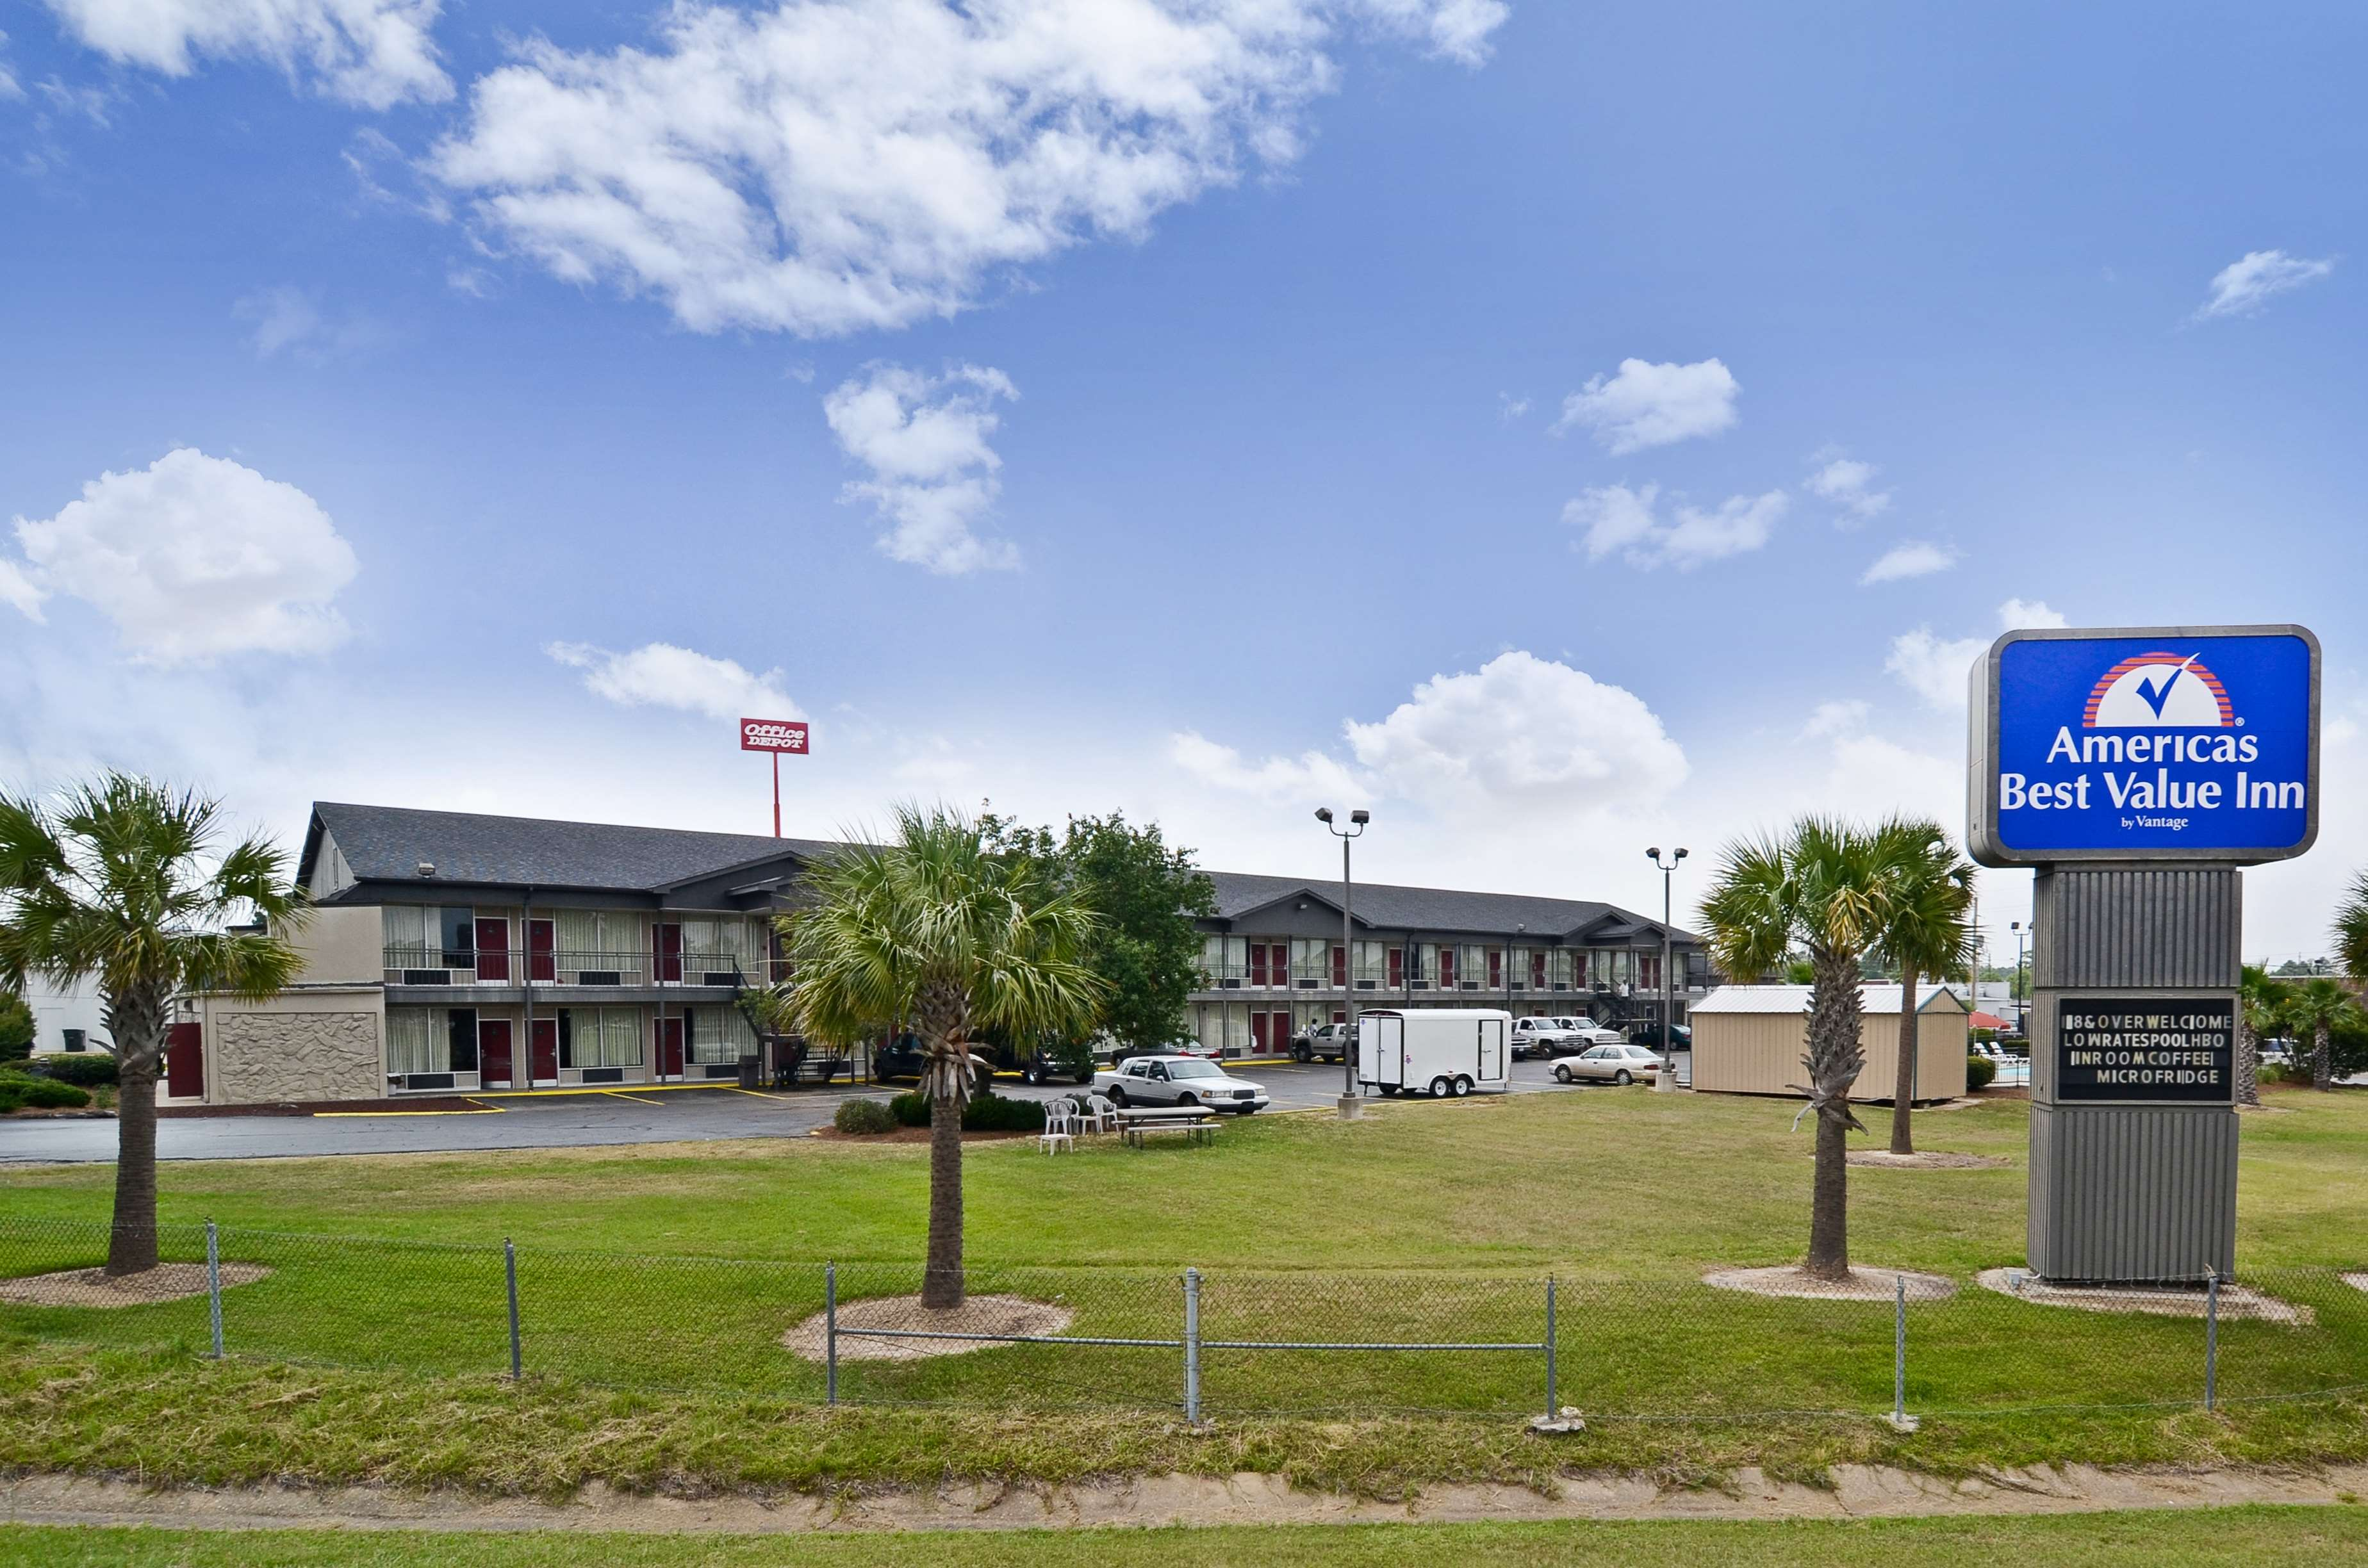 Americas best value inn west monroe coupons near me in for Americas best coupon code